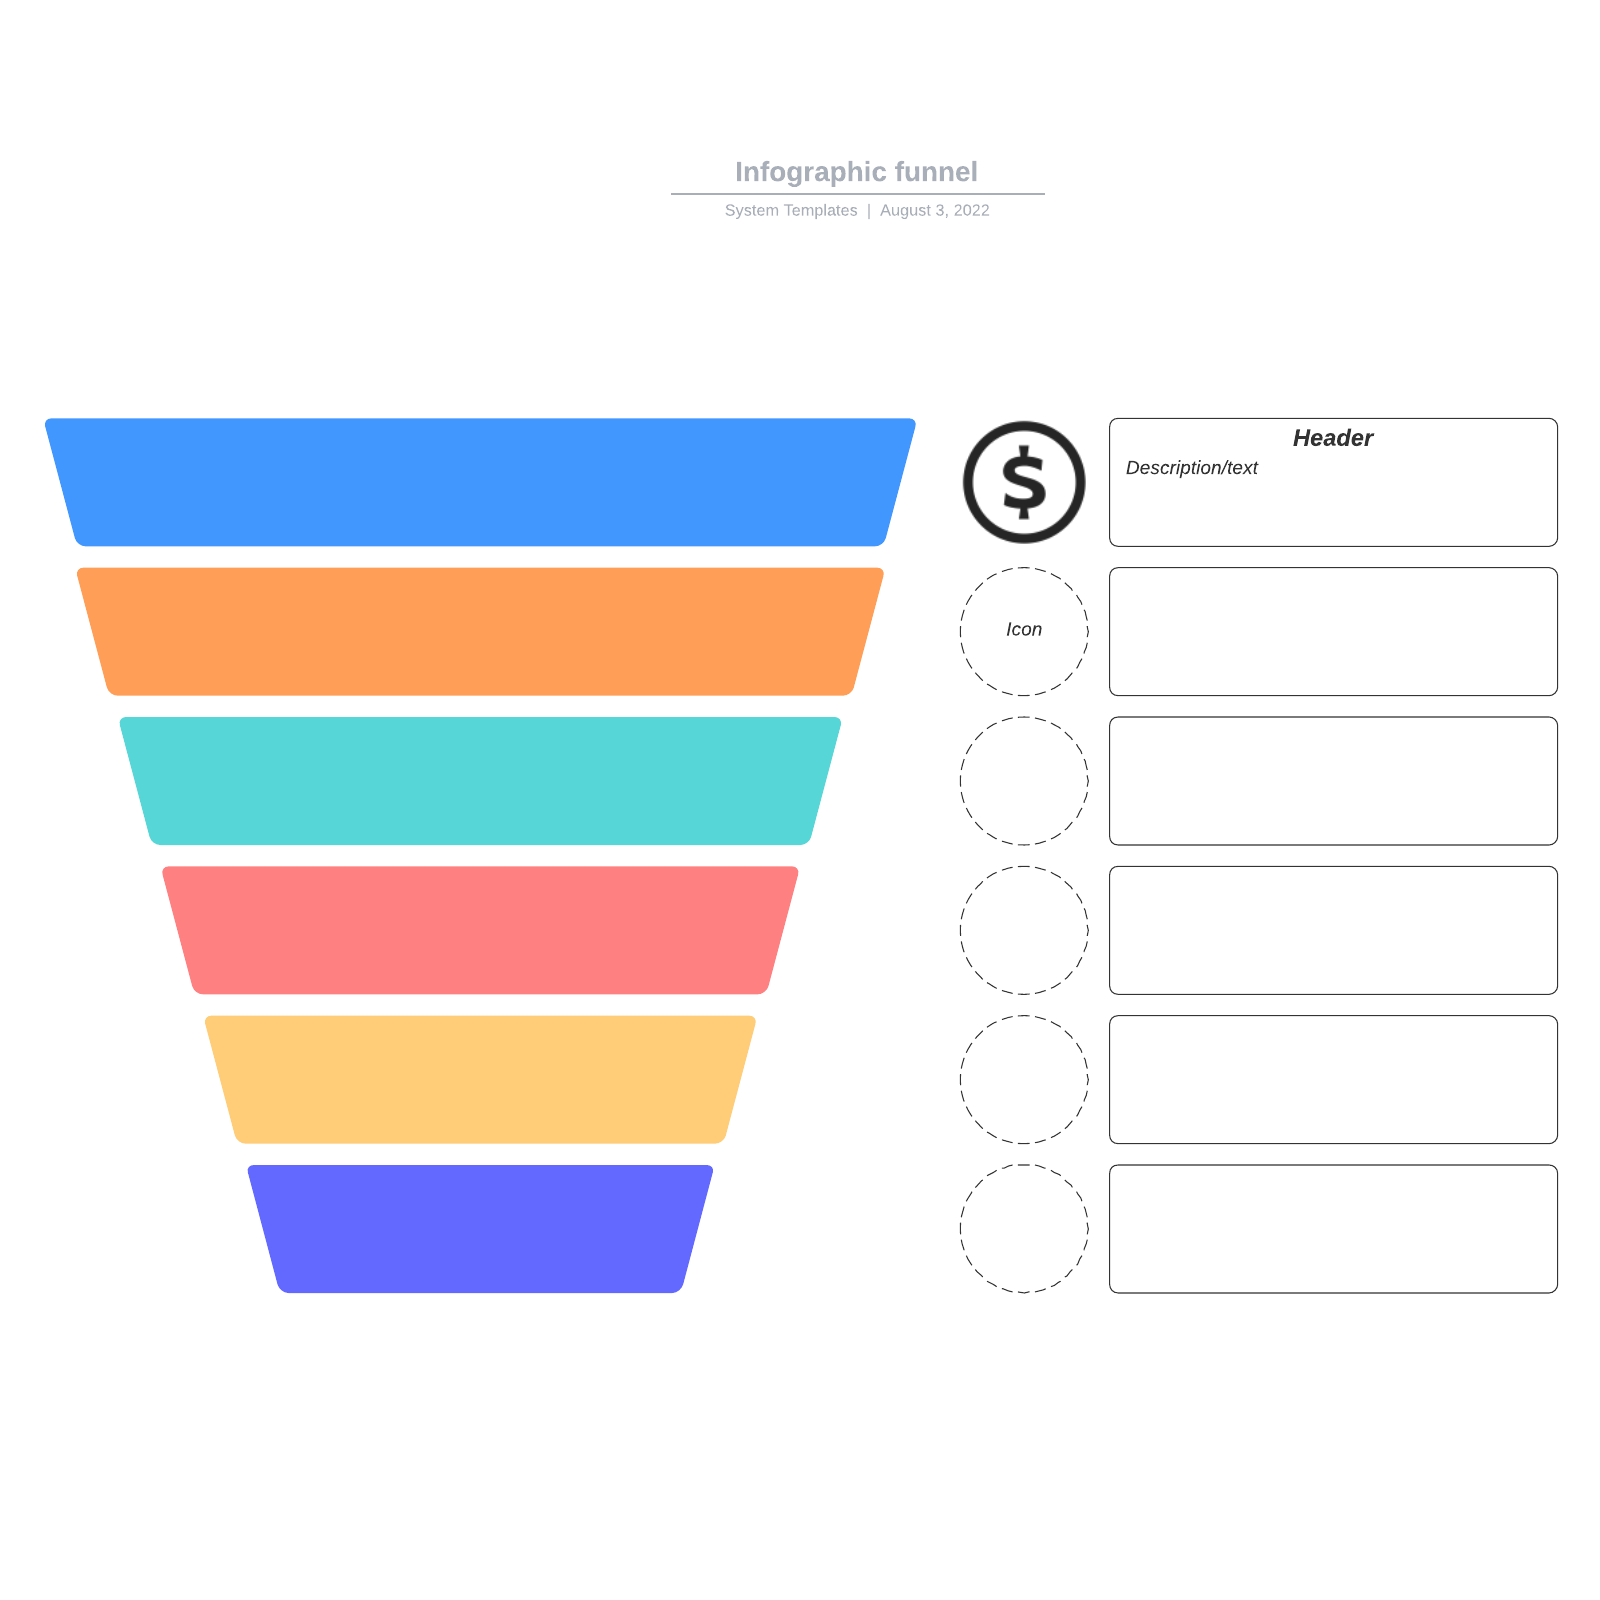 Infographic funnel